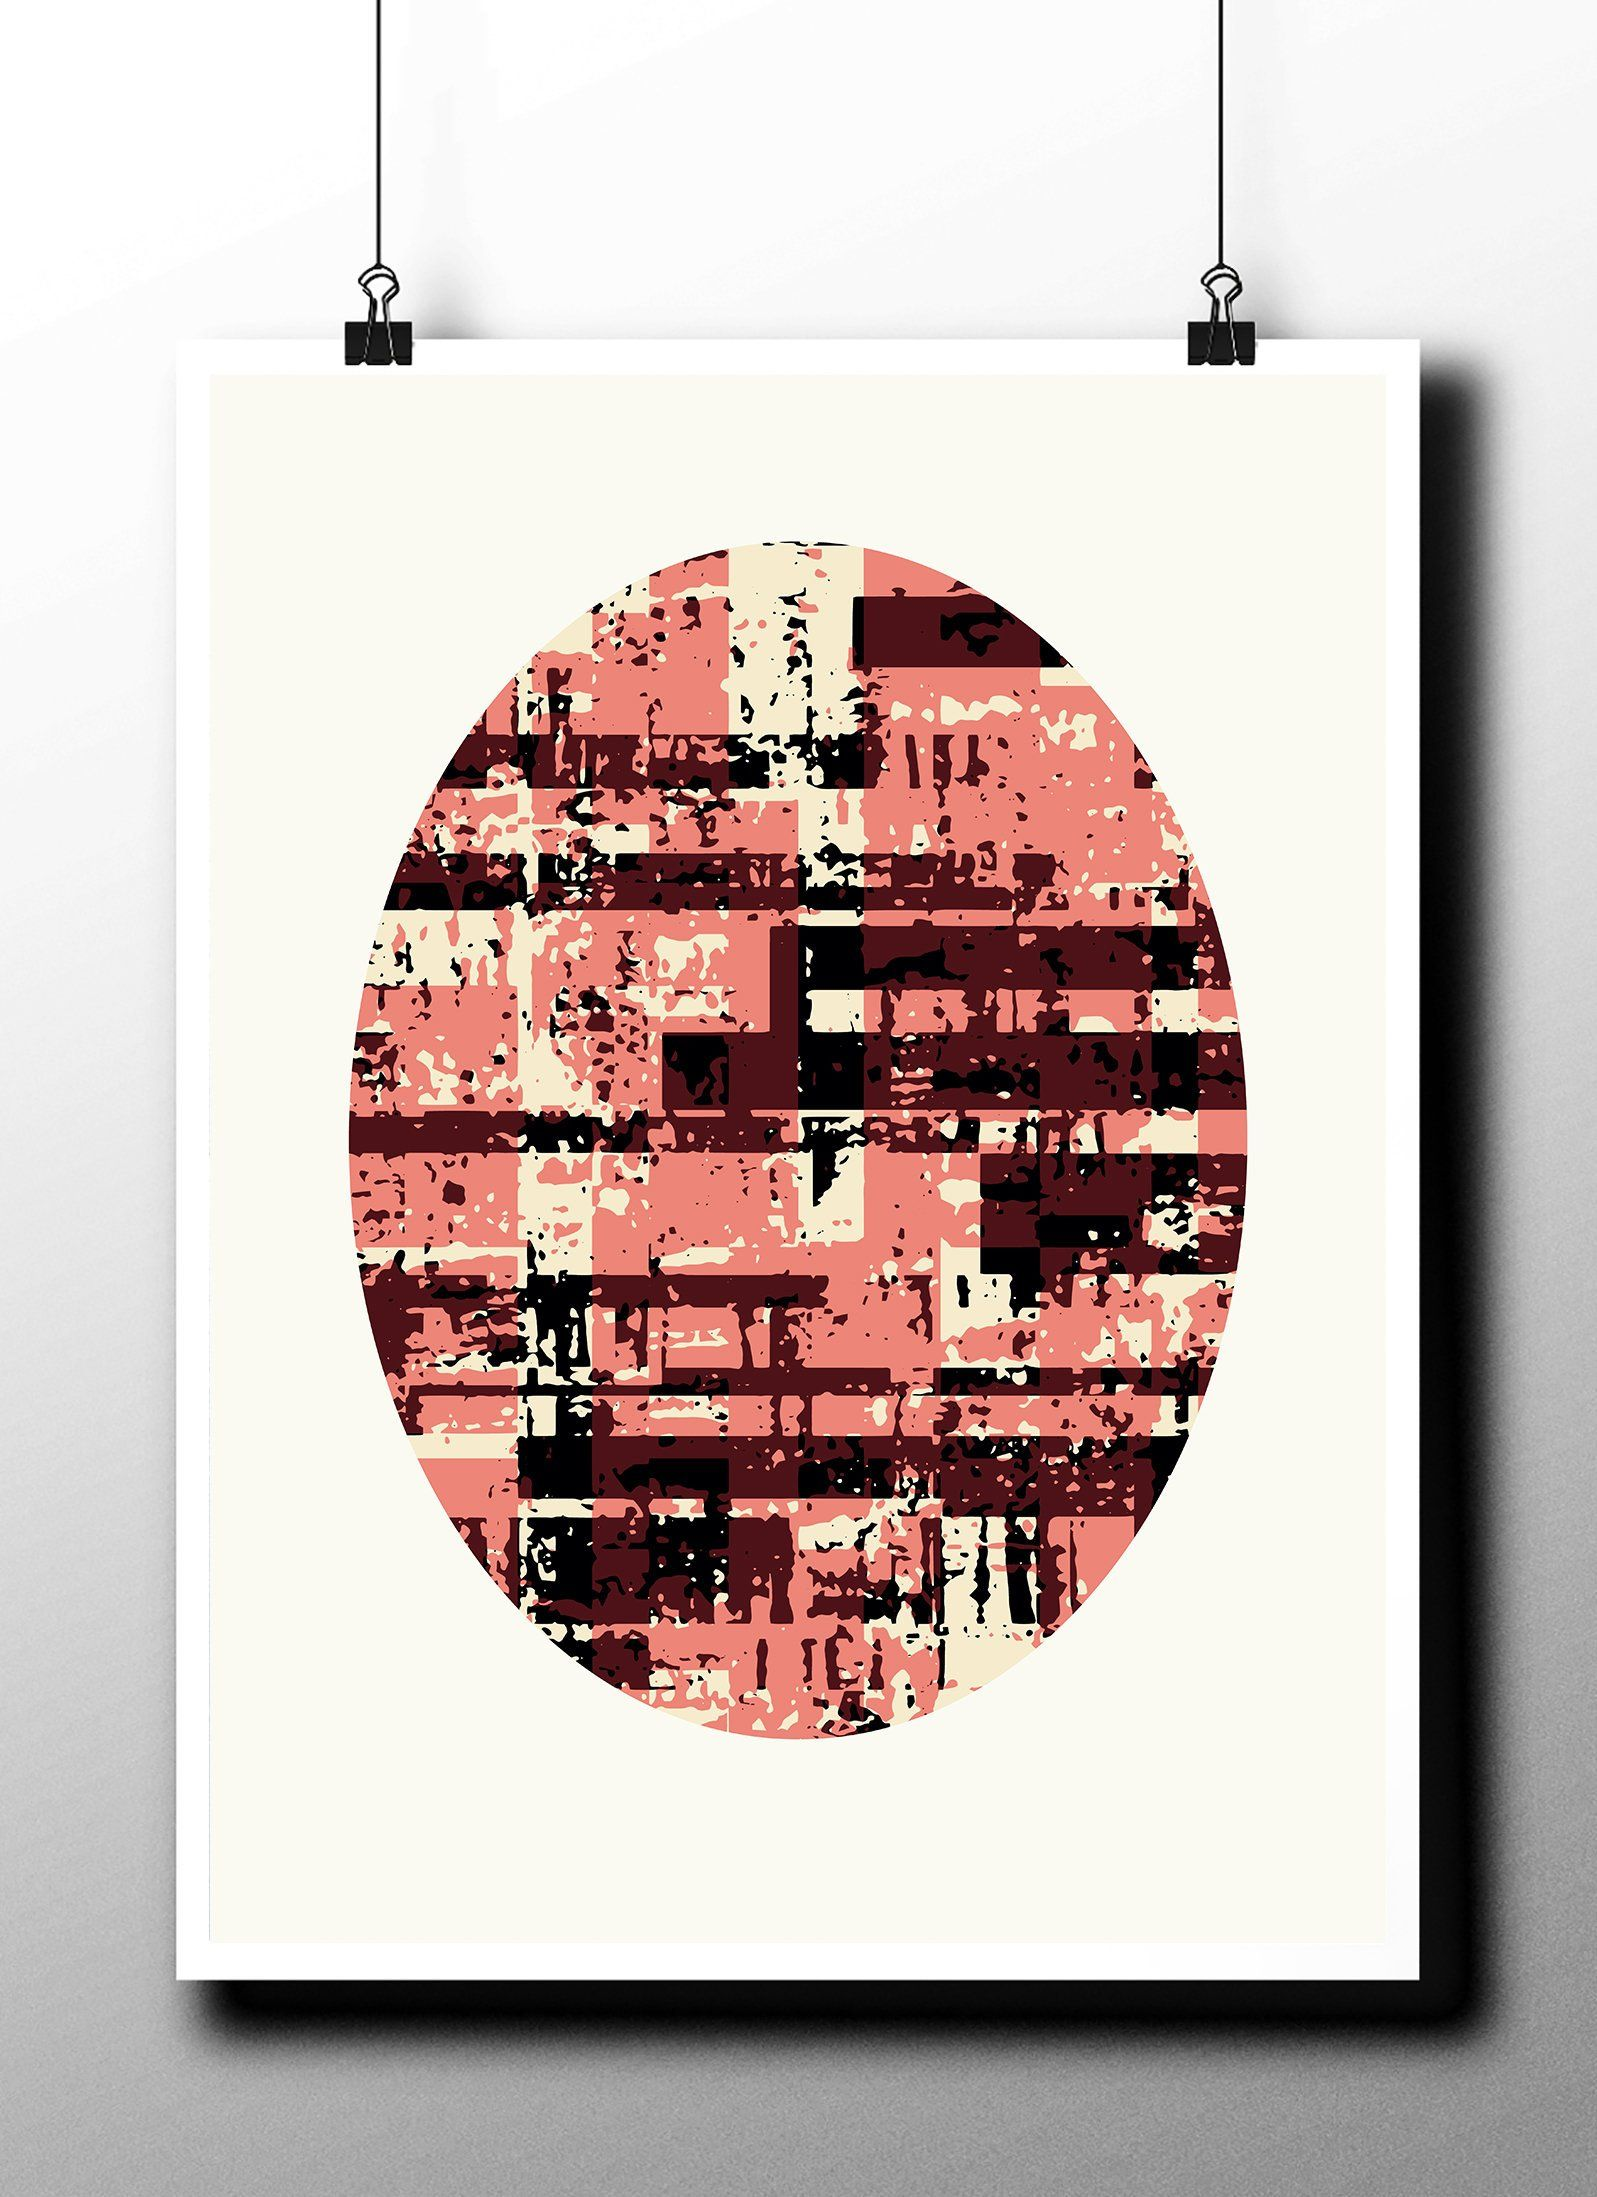 Abstract color downloadable printable posterellipse oval wall art modern decor print digital grunge geometric shapes graphic design by strnart on etsy